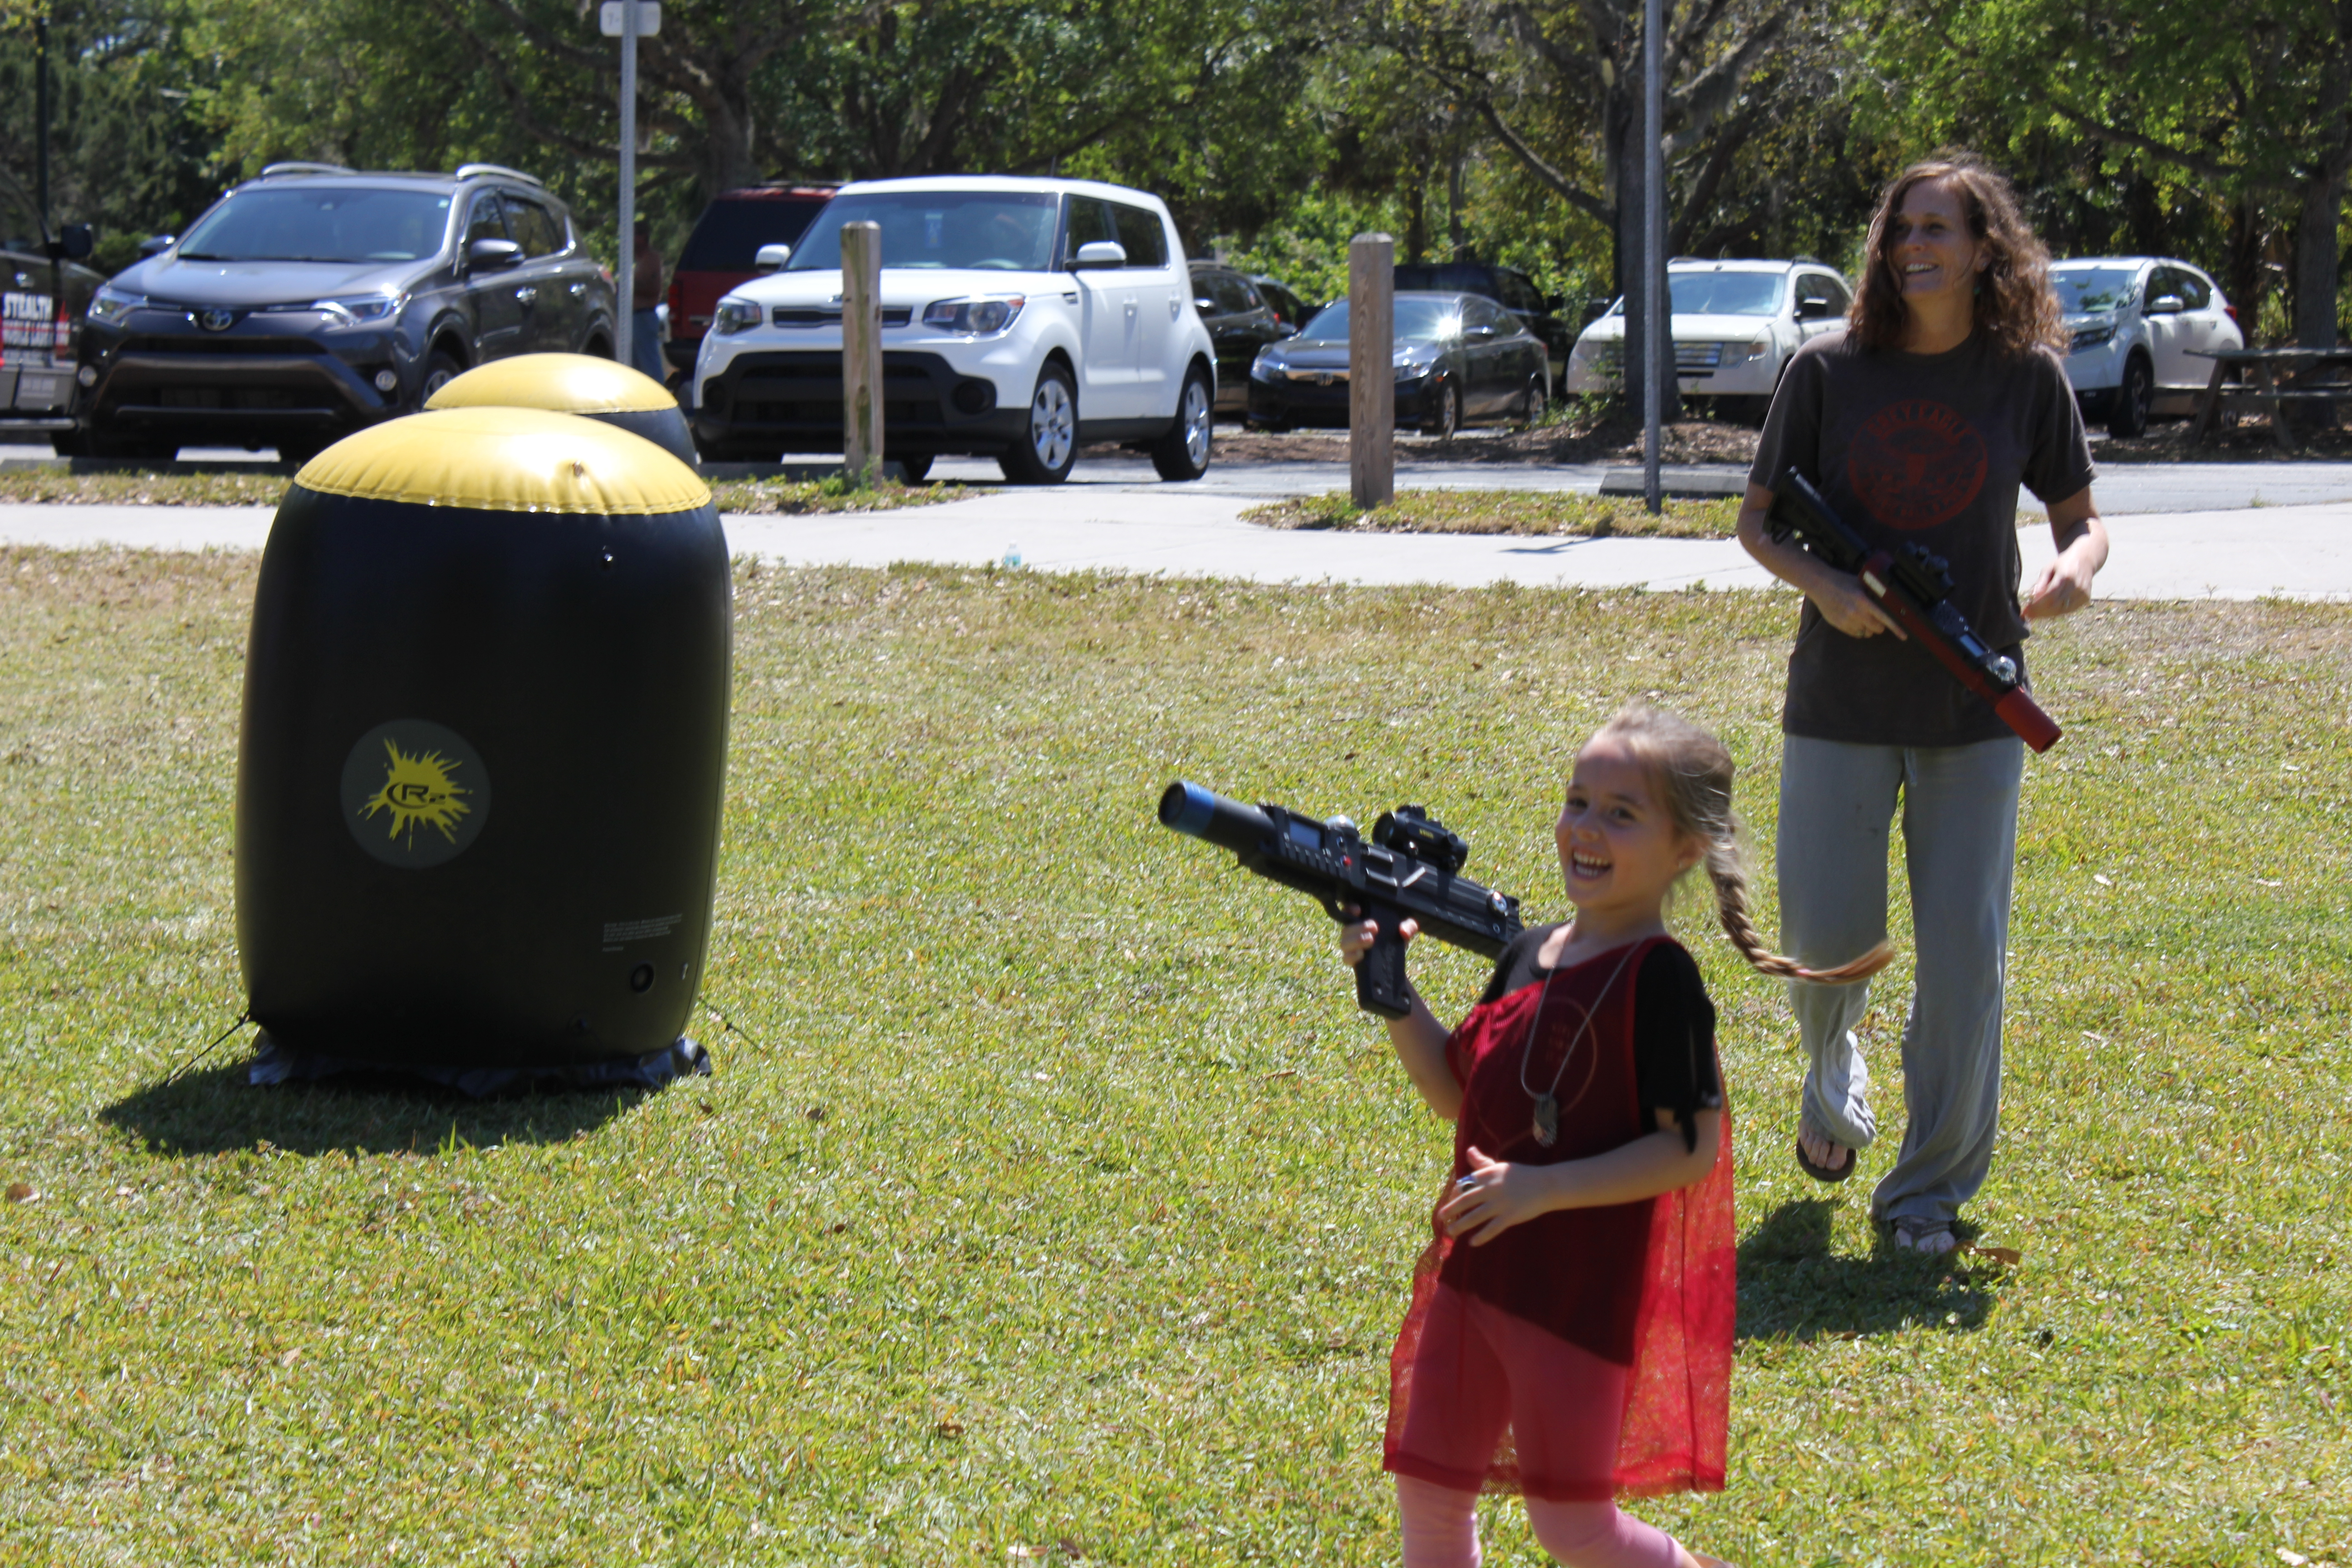 Laser tag in Cape Coral